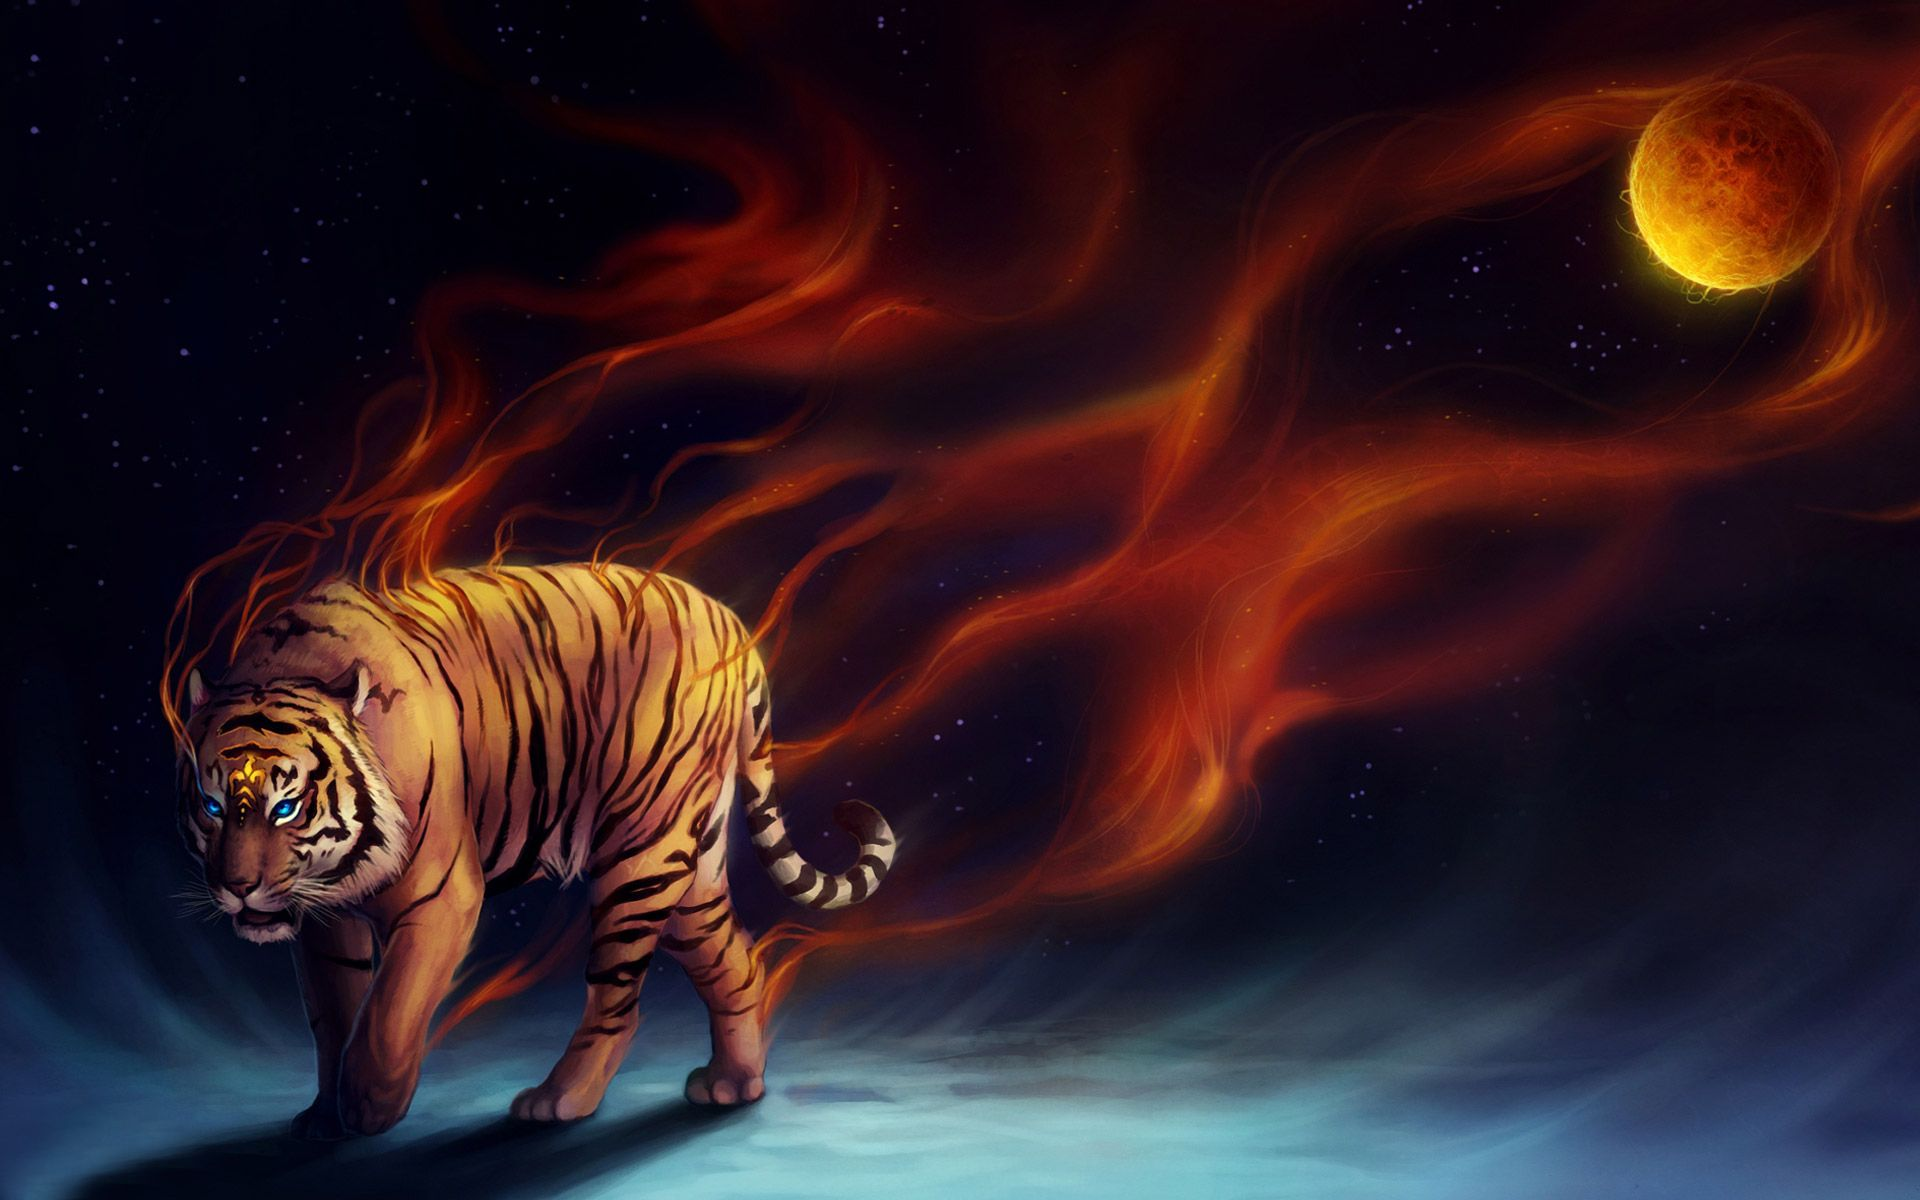 Digital abstract tiger wallpaper pinterest tiger digital abstract tiger wallpaper altavistaventures Image collections